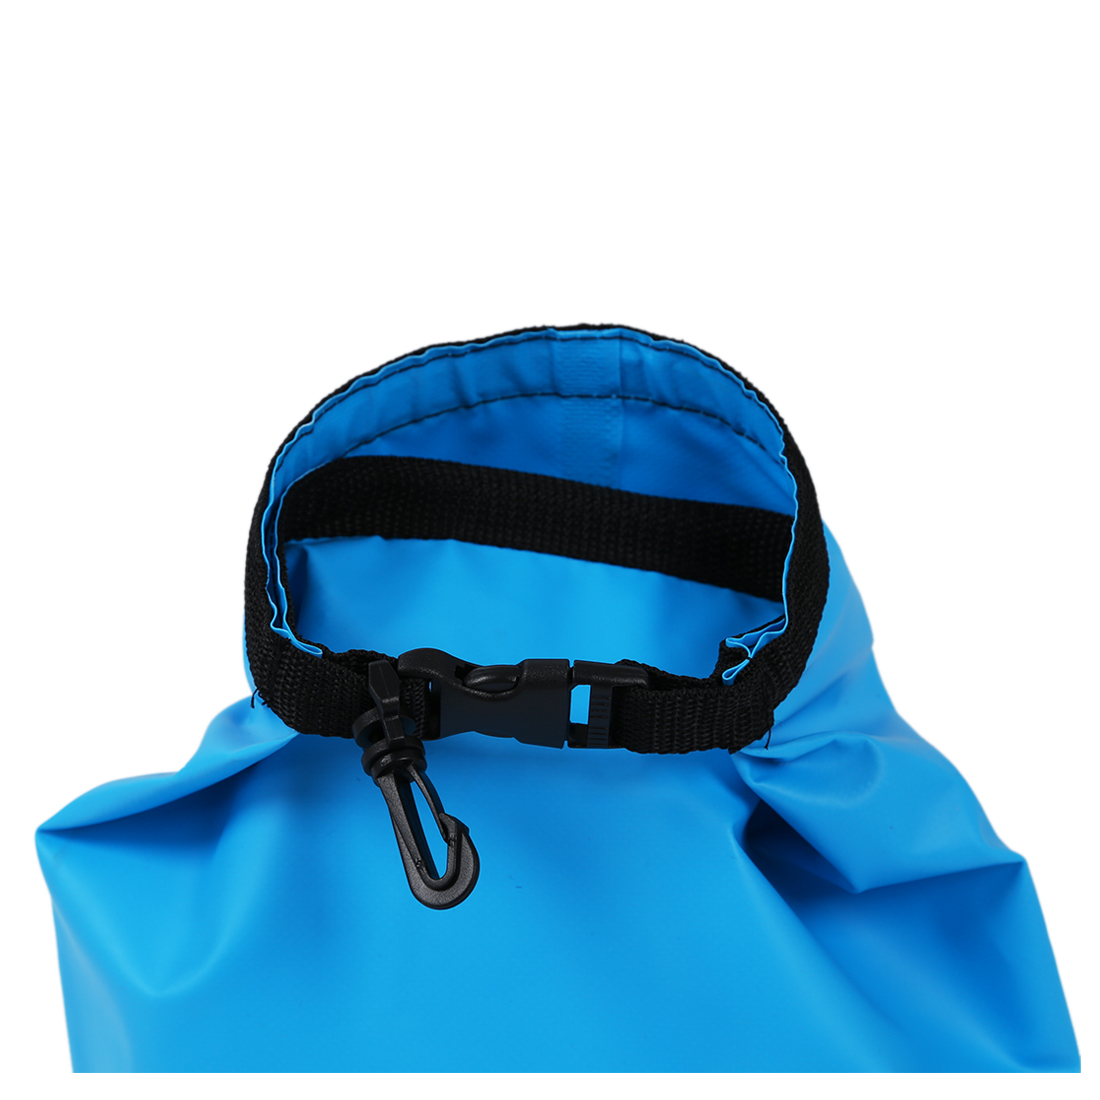 LUCKSTONE 5L Ultralight Outdoor Waterproof Rafting Dry Bag Camping Travel Kit Equipment Canoe Kayak Swimming Bags Storage Blue